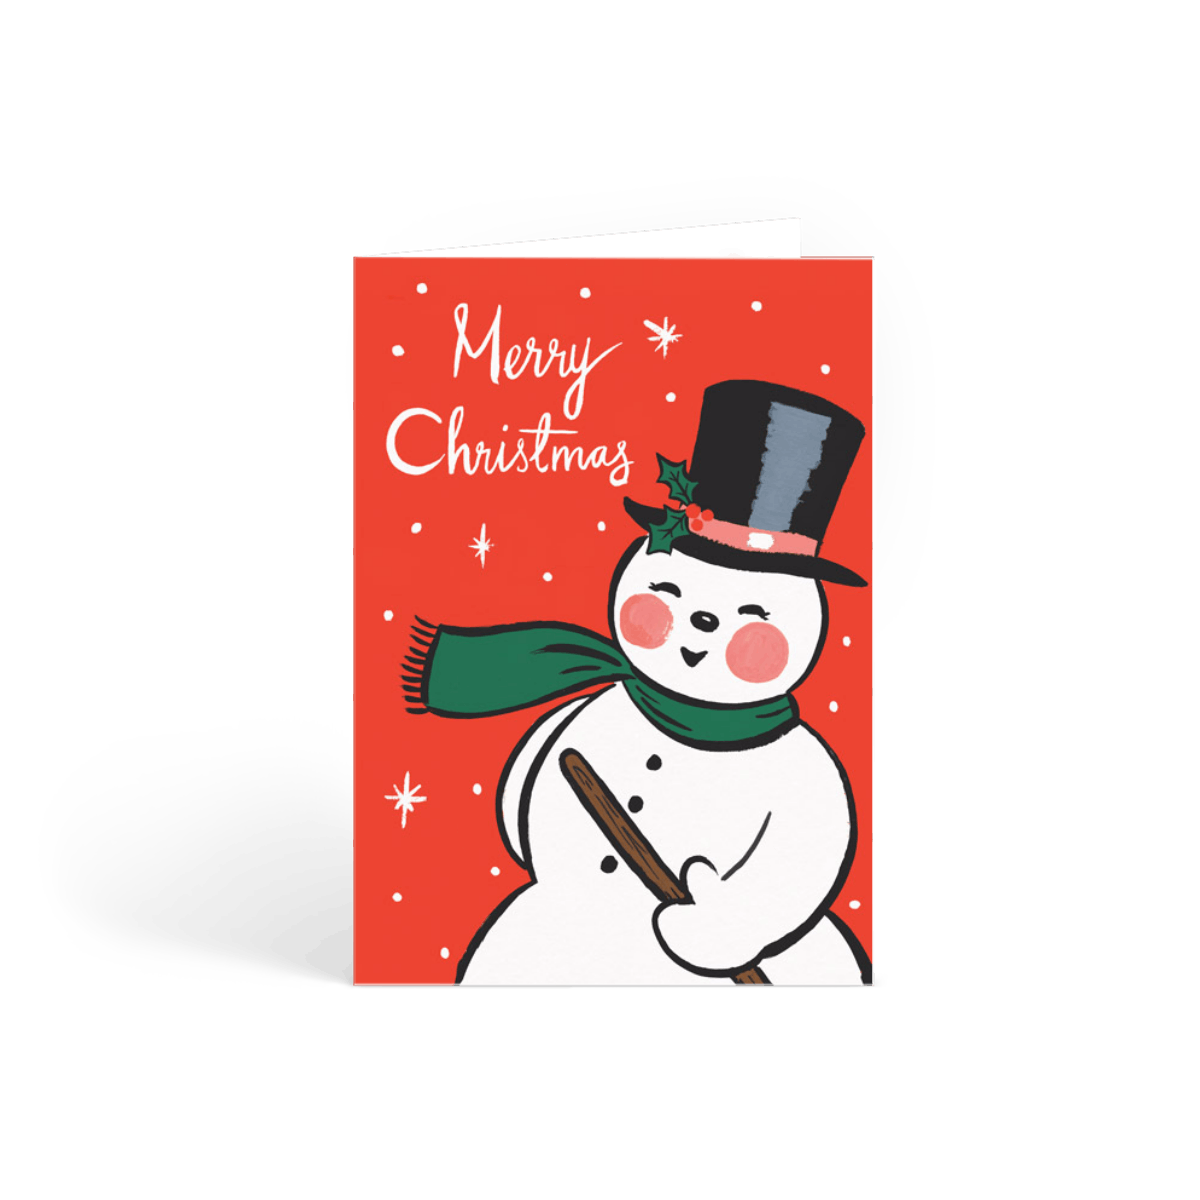 Https%3a%2f%2fwww.papier.com%2fproduct image%2f12126%2f2%2fretro snowman 3058 front 1476263530.png?ixlib=rb 1.1